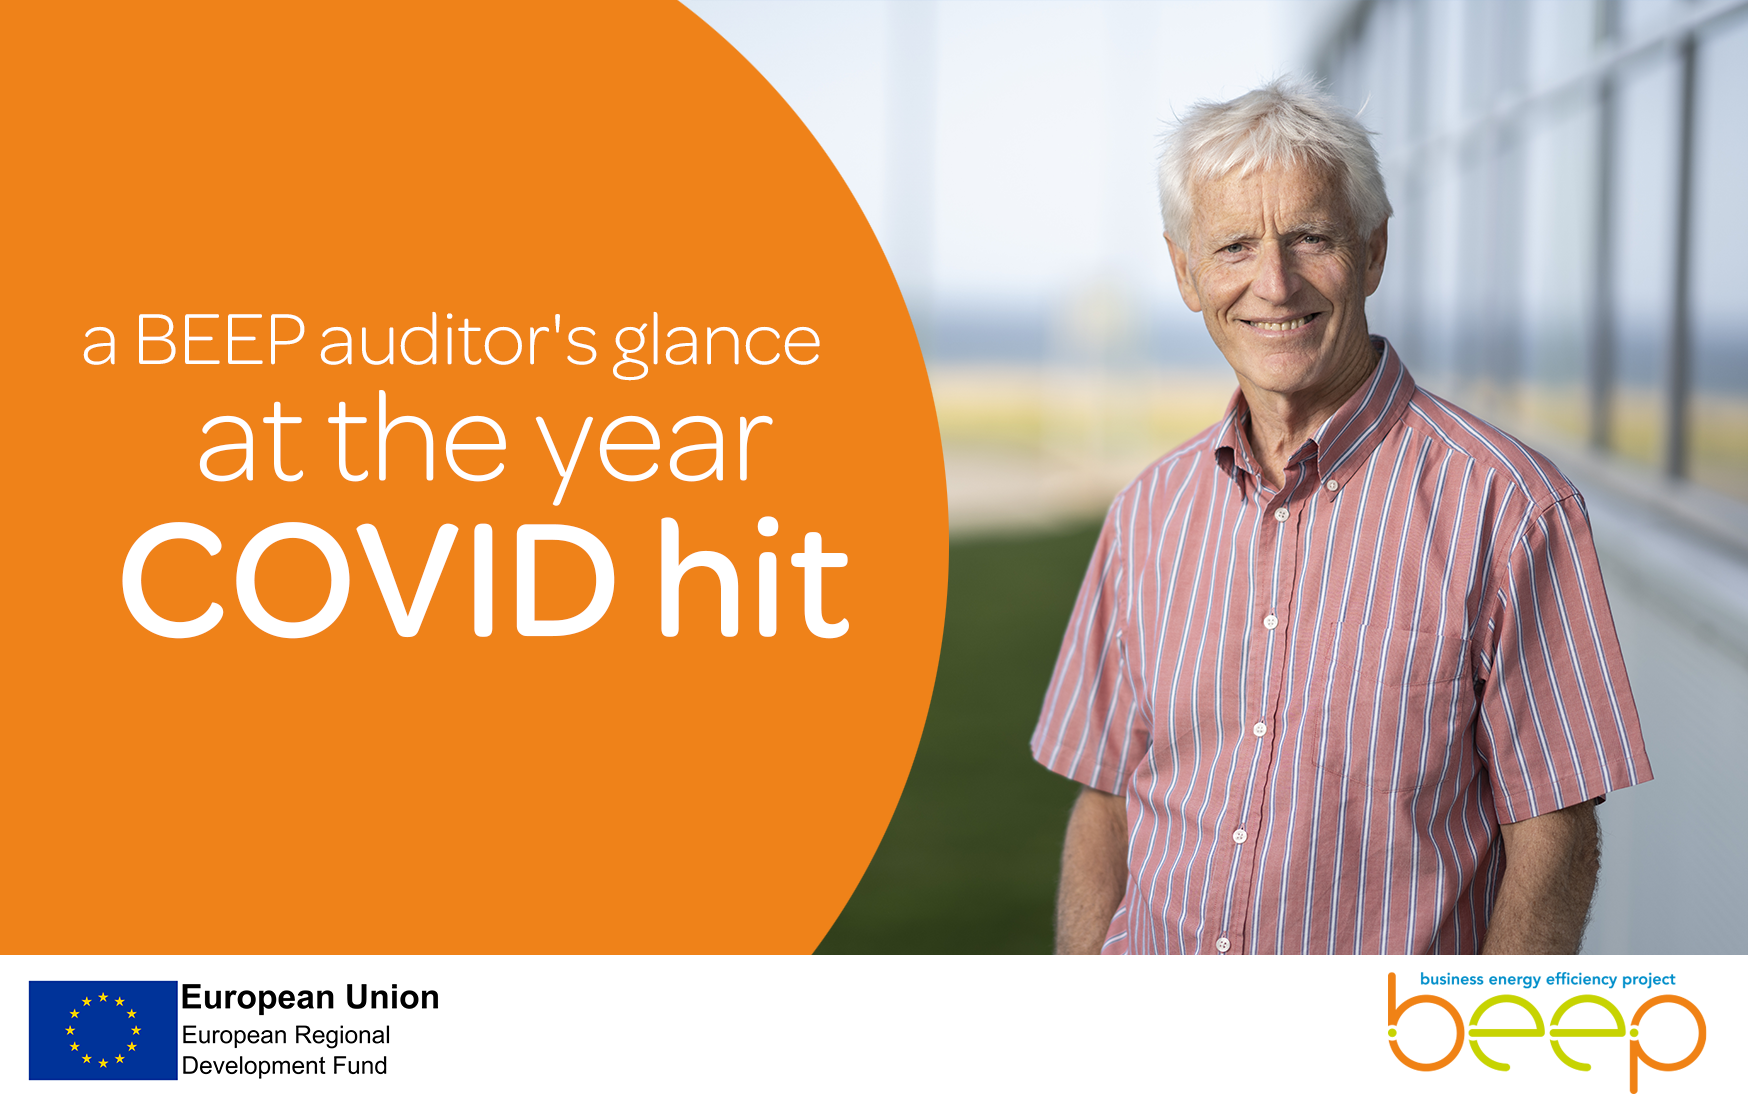 older man smiling at the camera text says a BEEP auditors glance at the year COVID hit